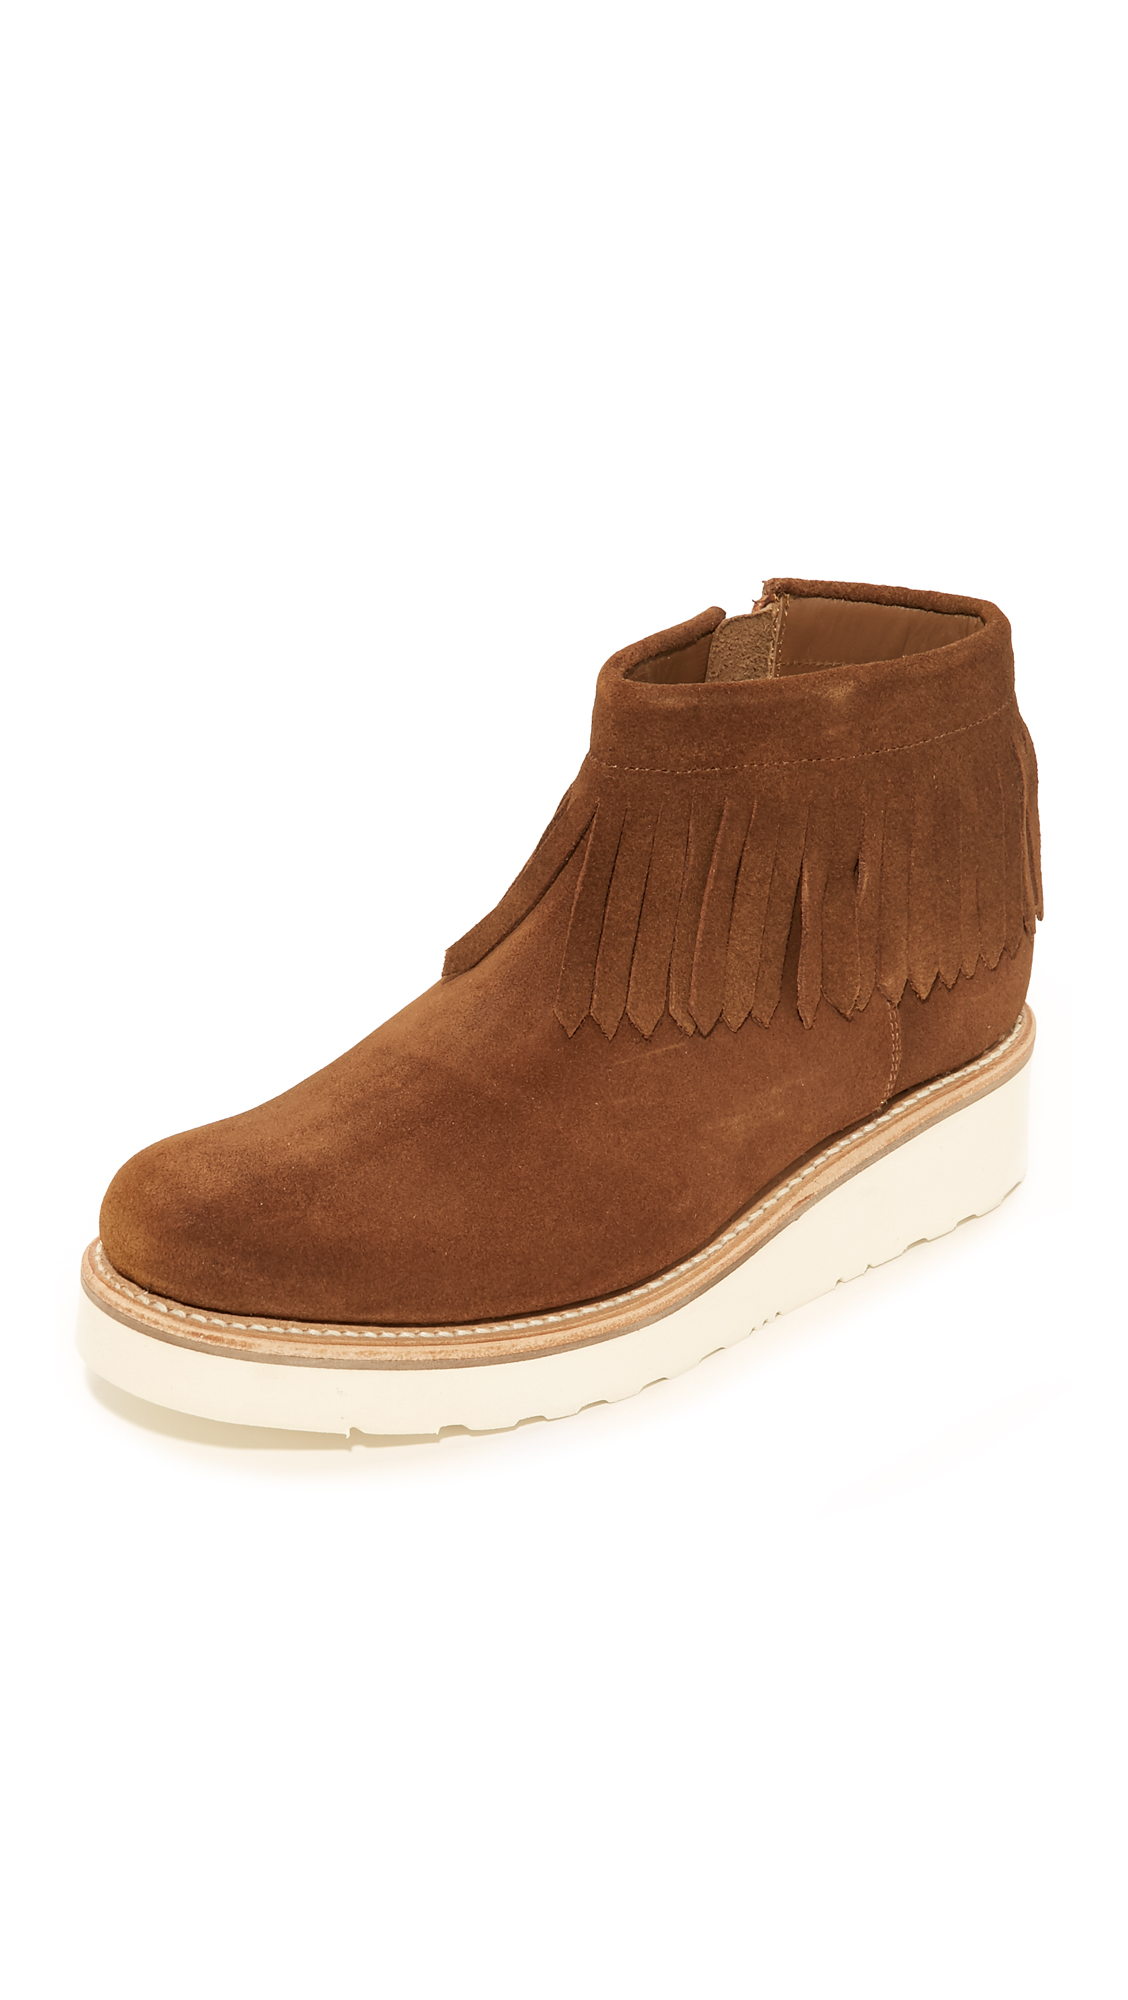 Grenson Trixie Fringe Booties - Snuff